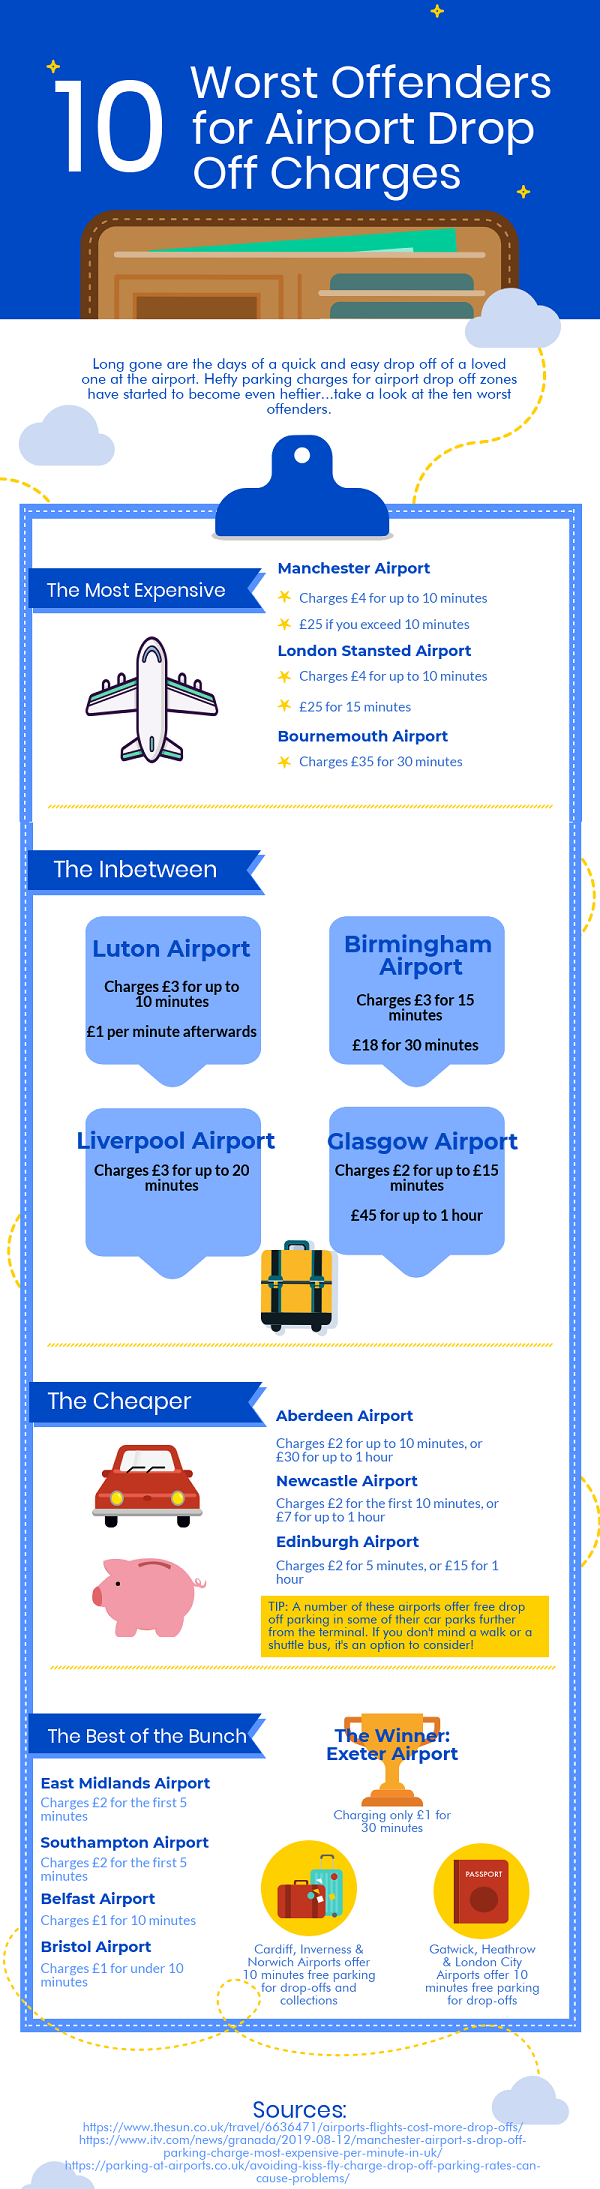 https://i.ibb.co/9477k05/Rip-off-Drop-Off-Airport-Parking-Infographic.png